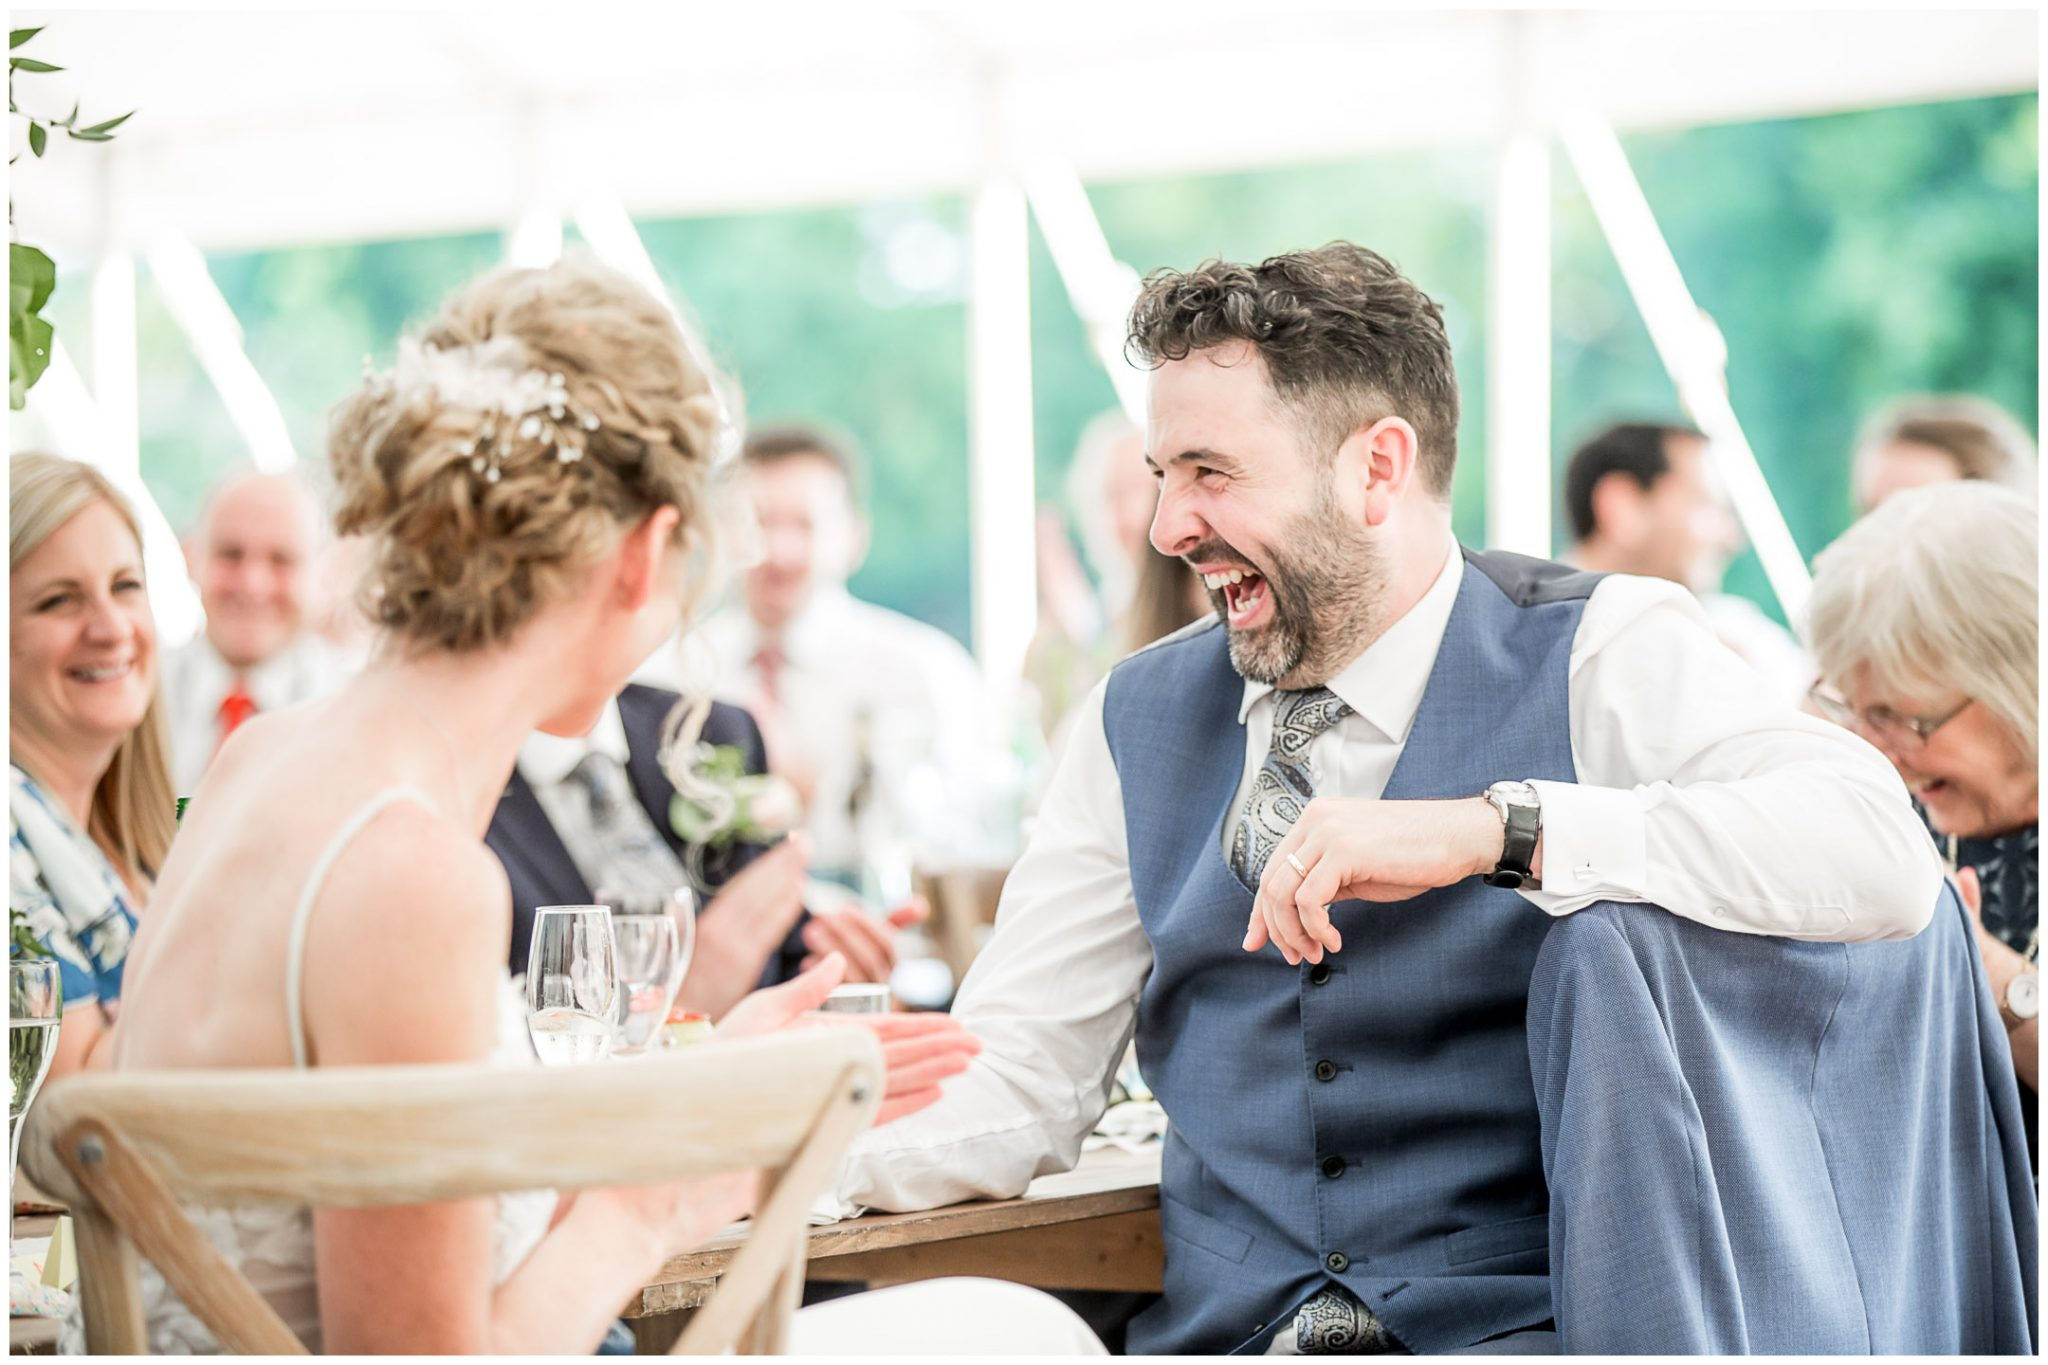 Groom laughing at the best man's speech